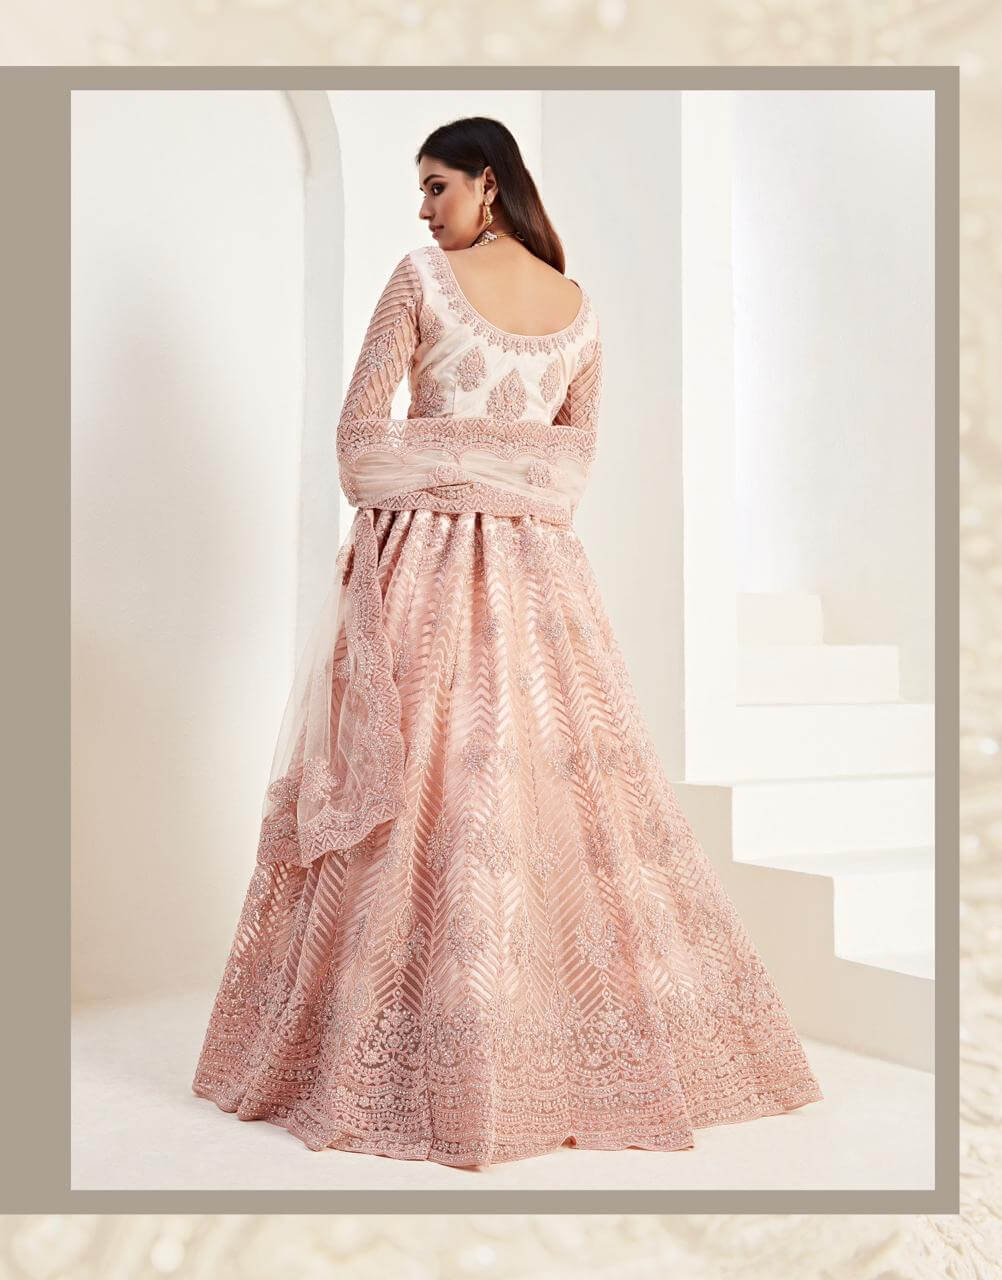 Alizeh Bridal Heritage Vol 2 collection 6